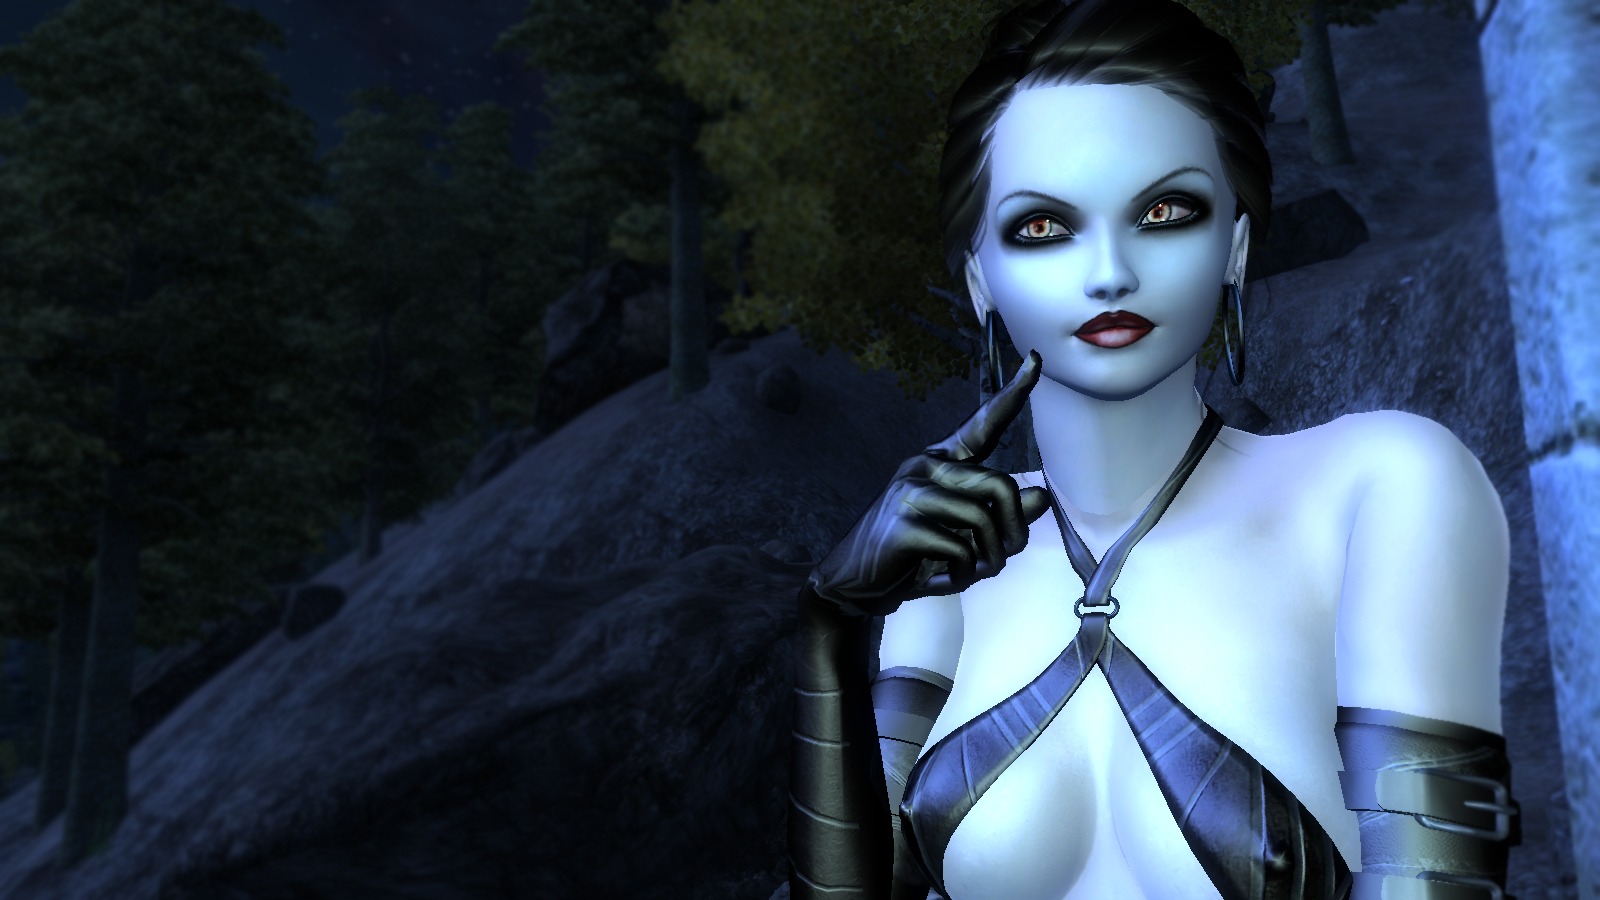 Elder scroll oblivion hg eye candy xxx beautiful girl